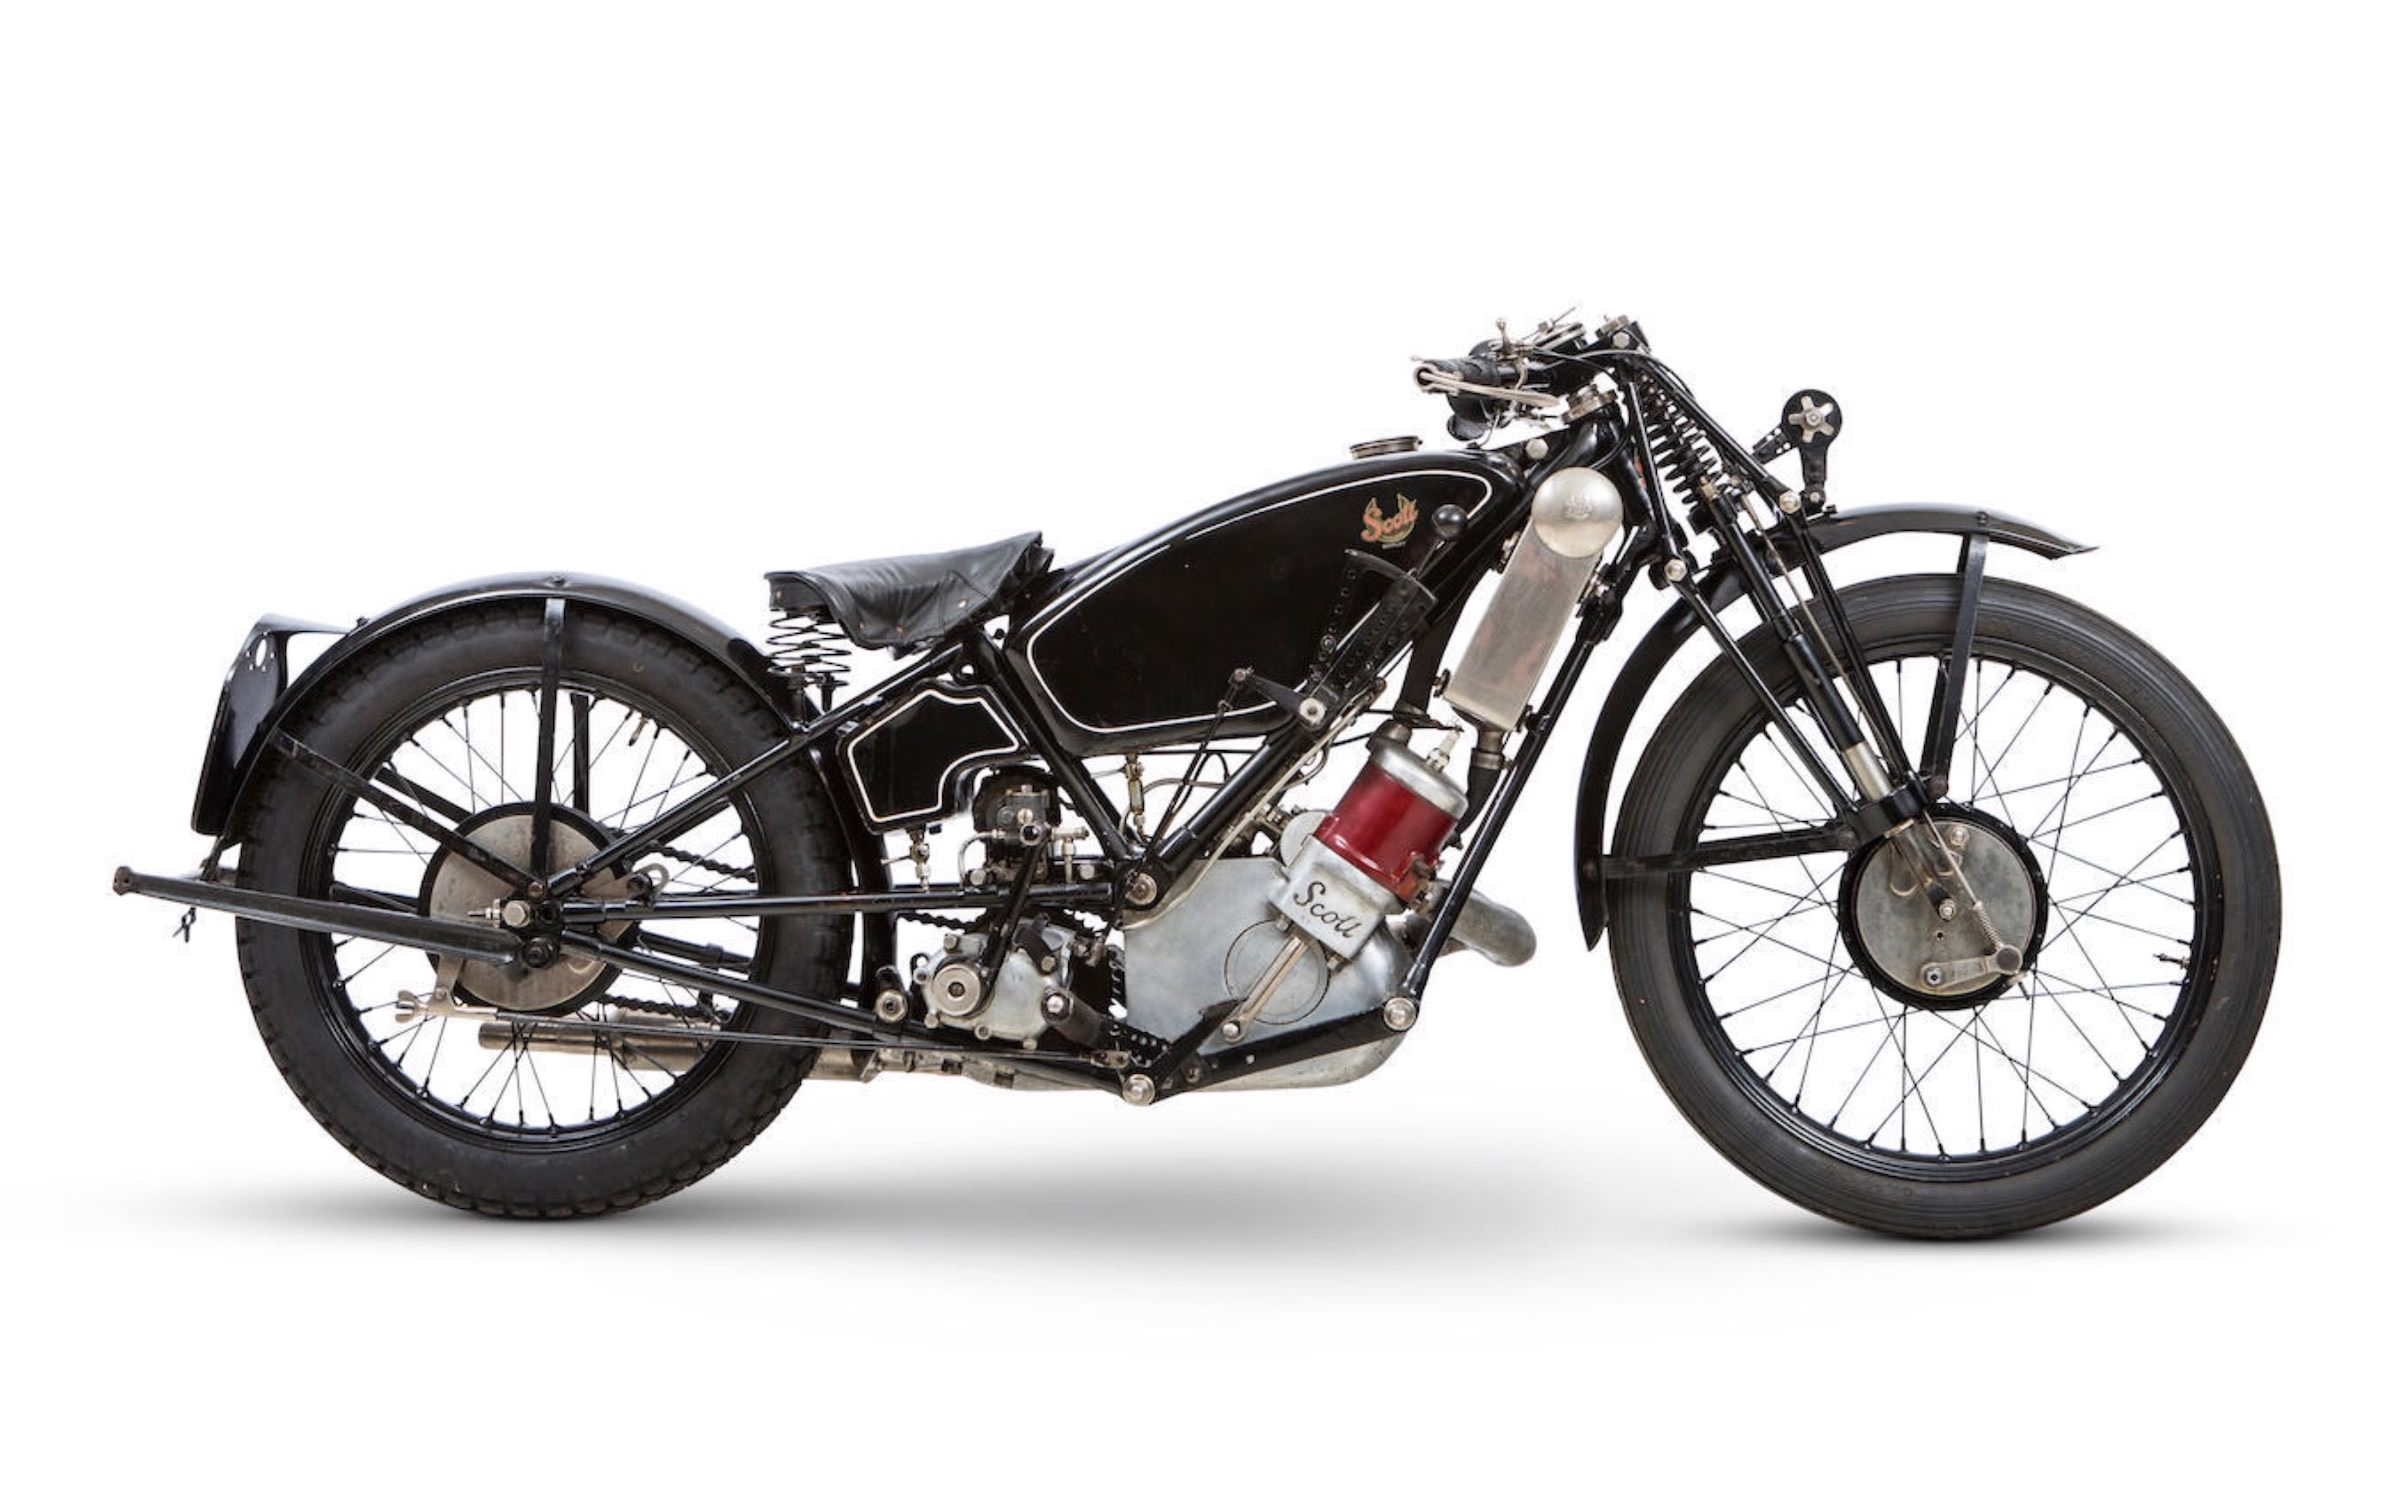 1926 Isle of Man TT Competitor - Scott Flying Squirrel